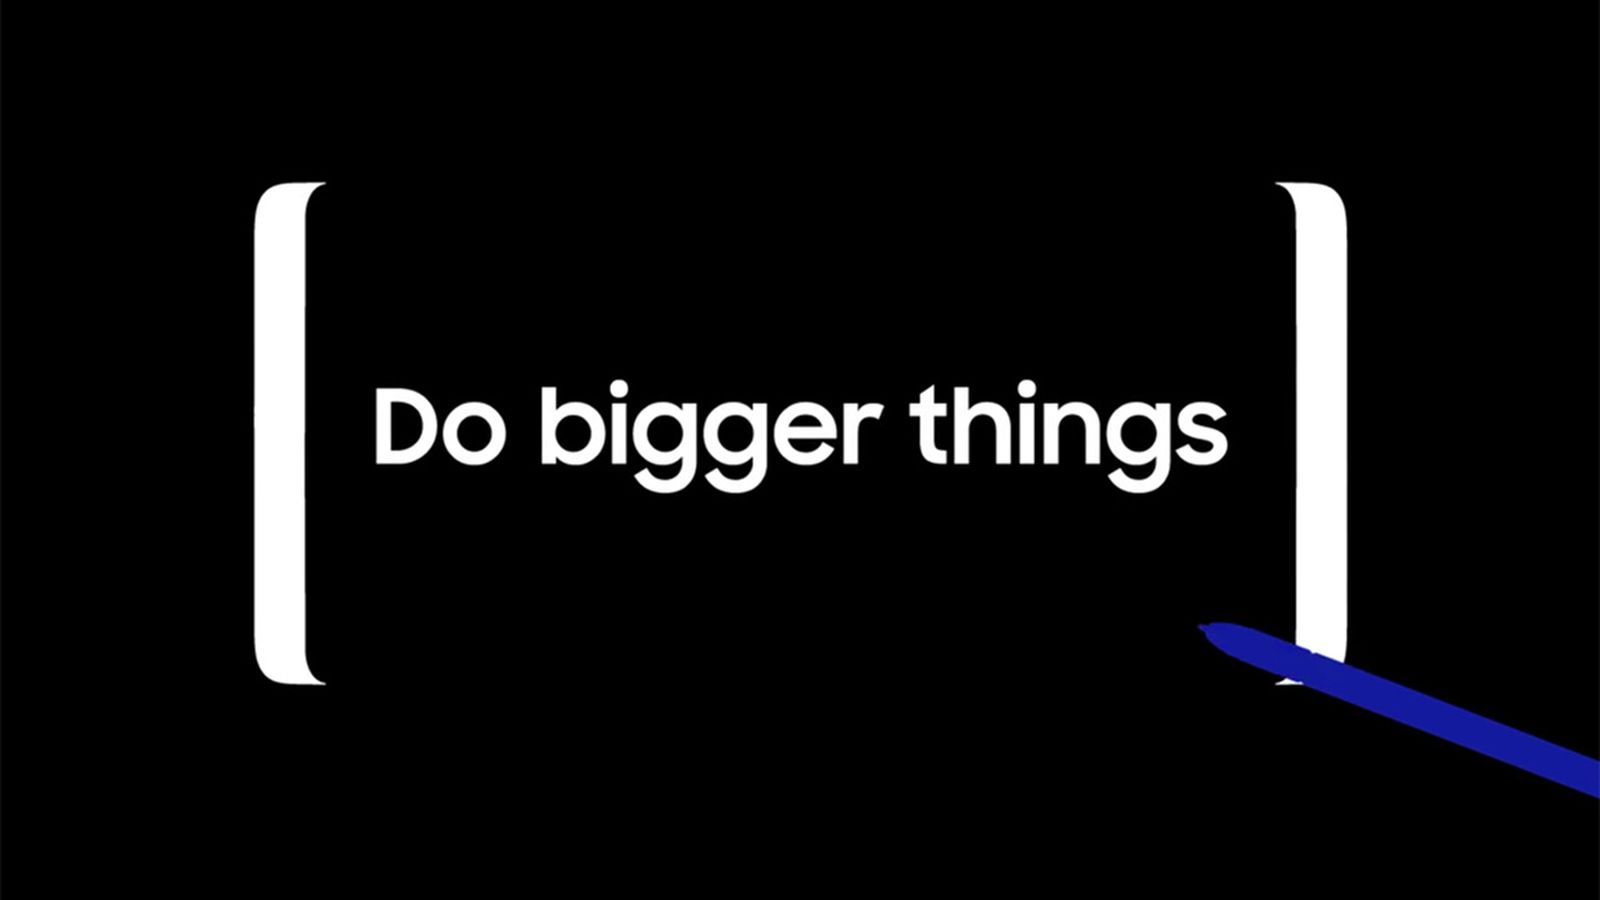 Galaxy Note 8 Teaser Suggests It's Just a Larger S8 with a Stylus